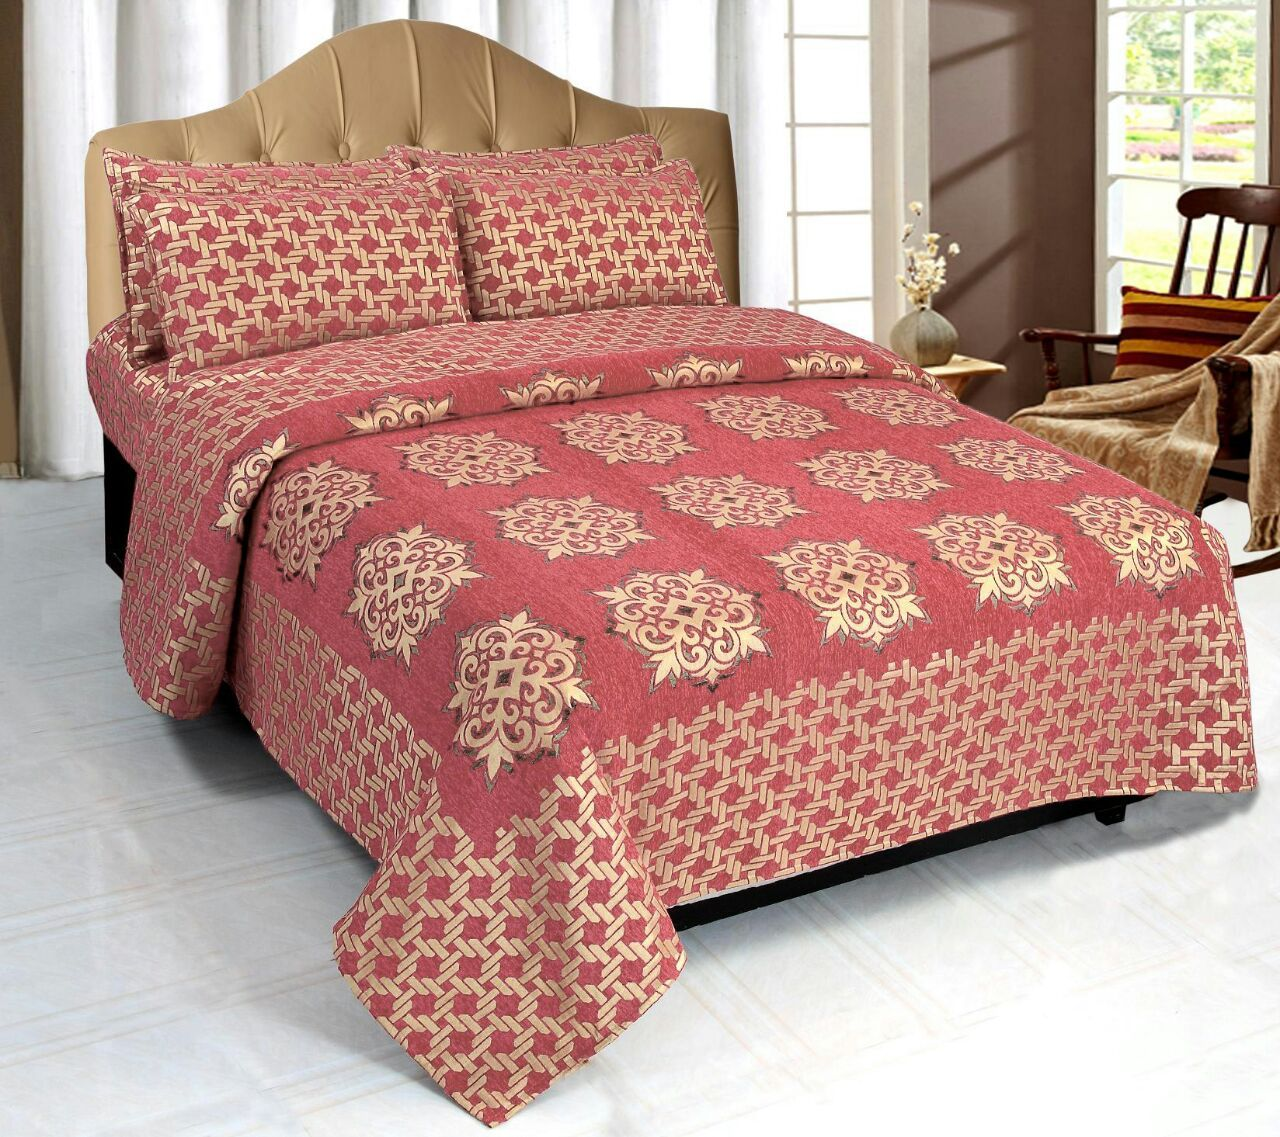 Network of Spades Chenille Bedcovers - C